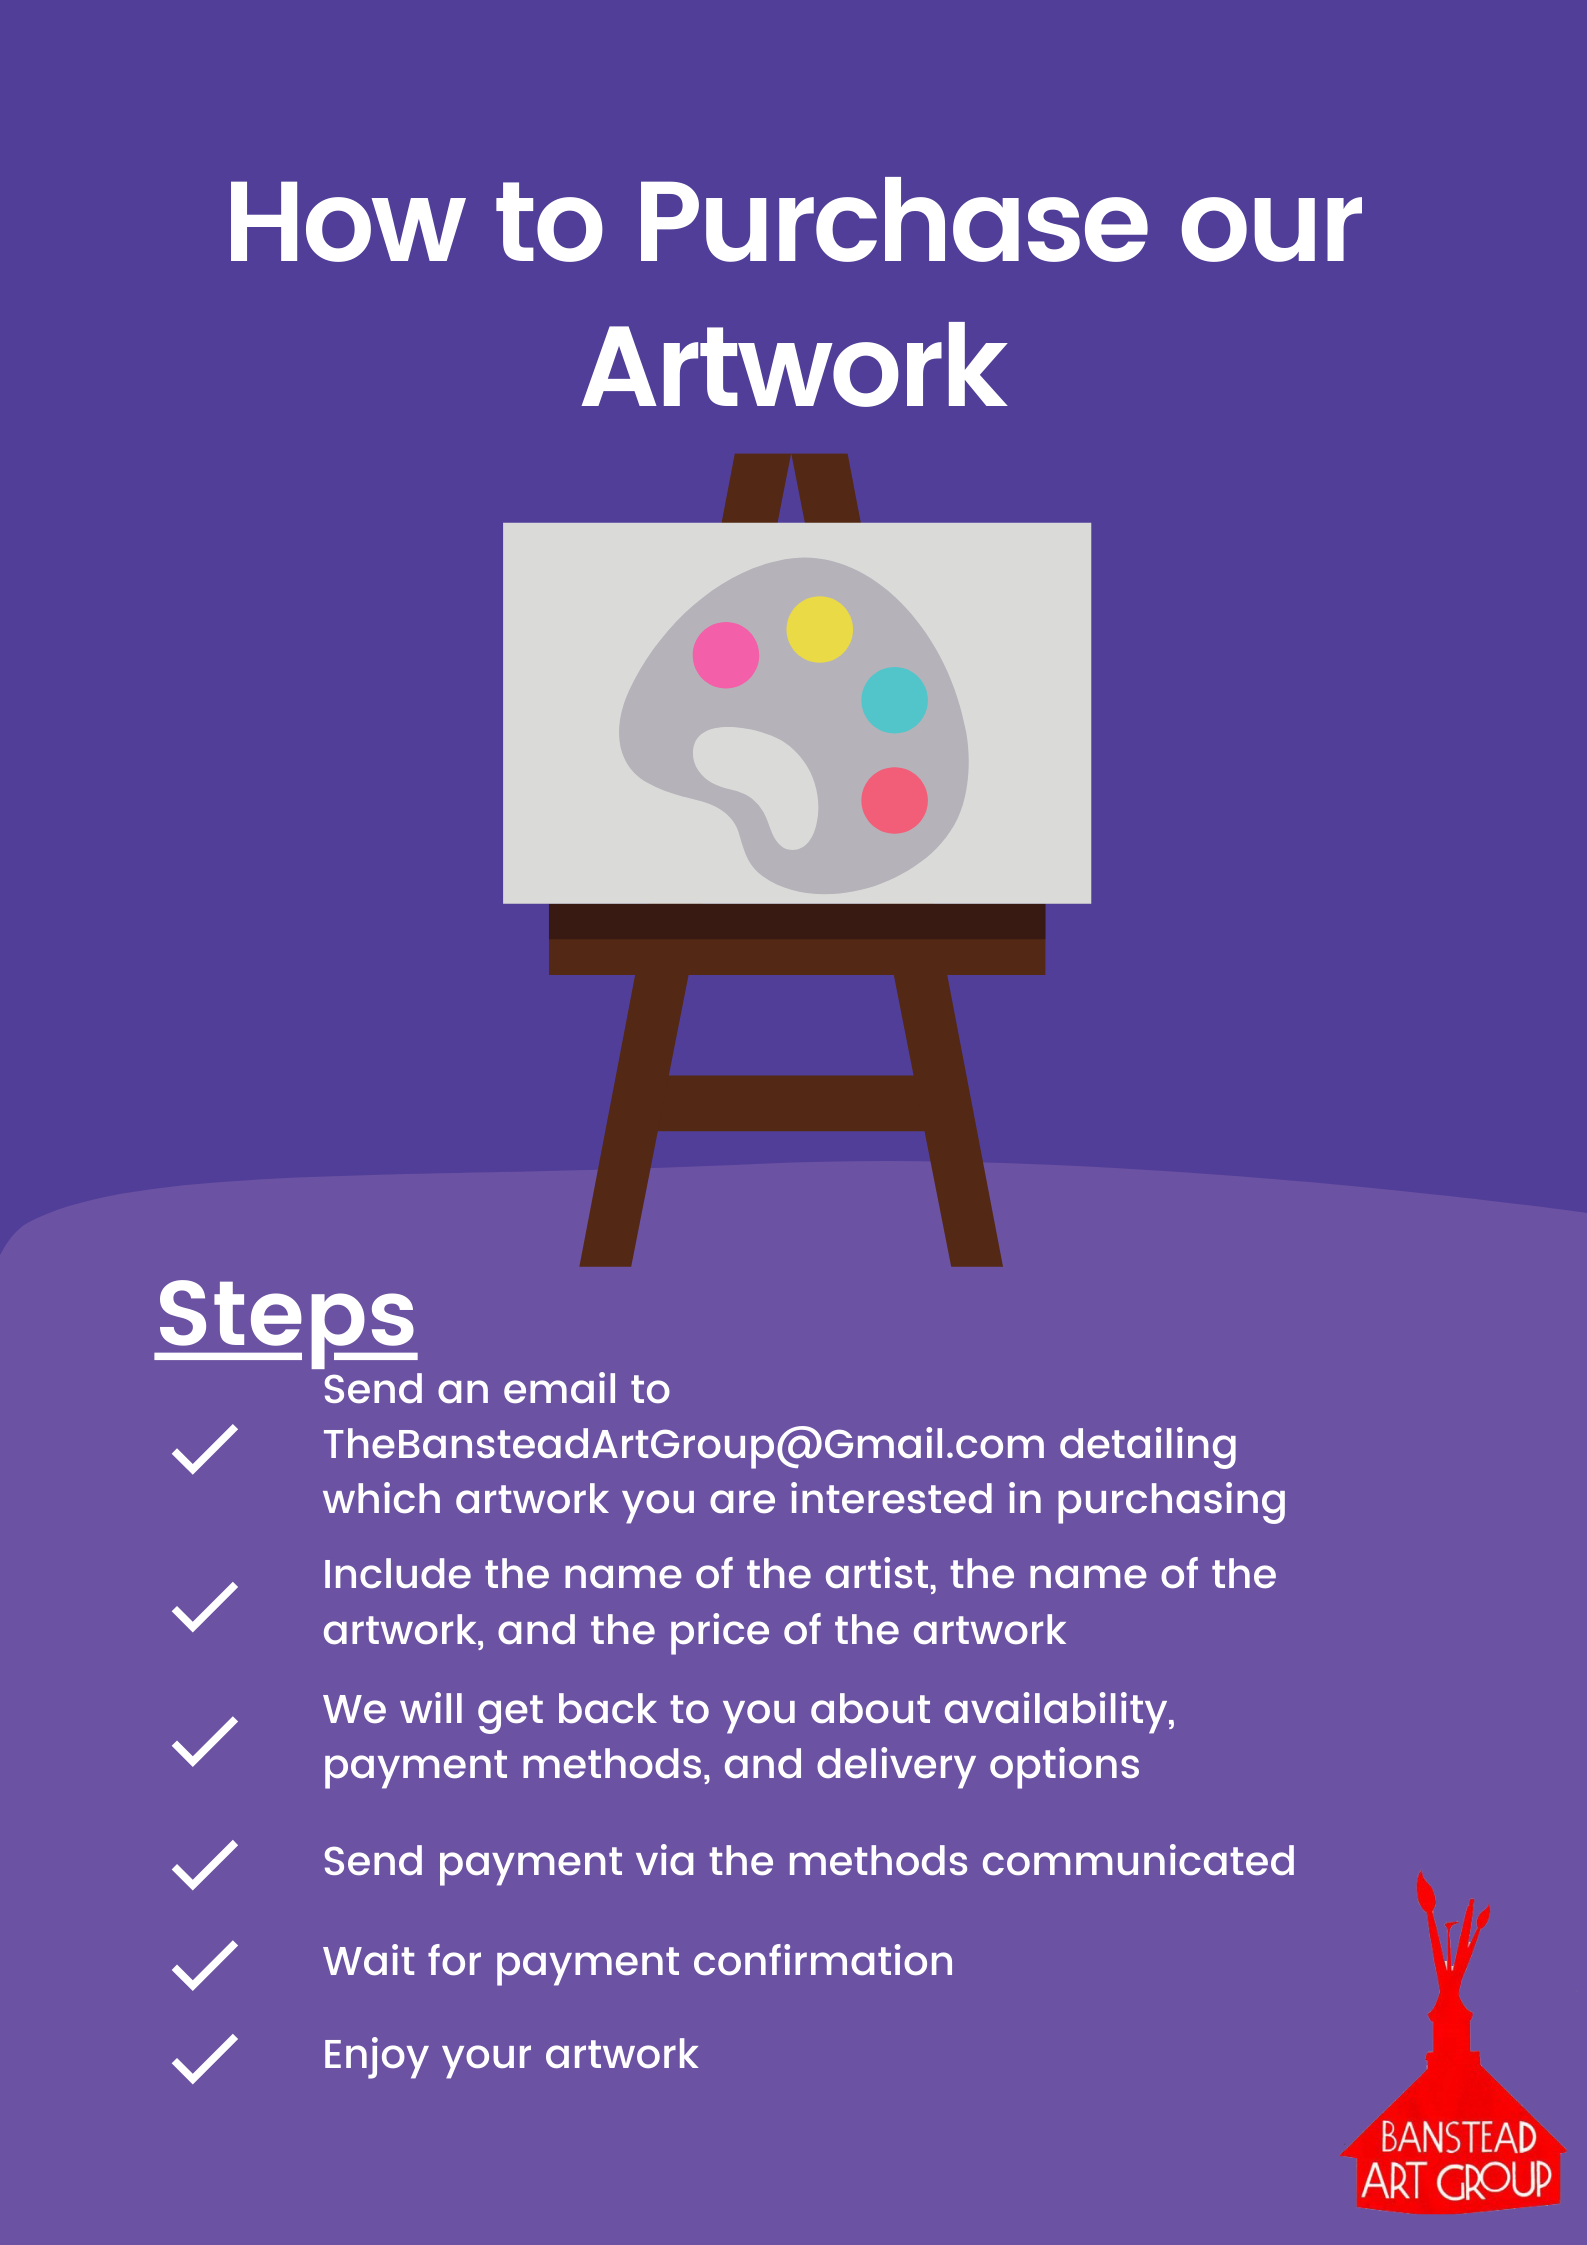 How to Purchase our Artwork